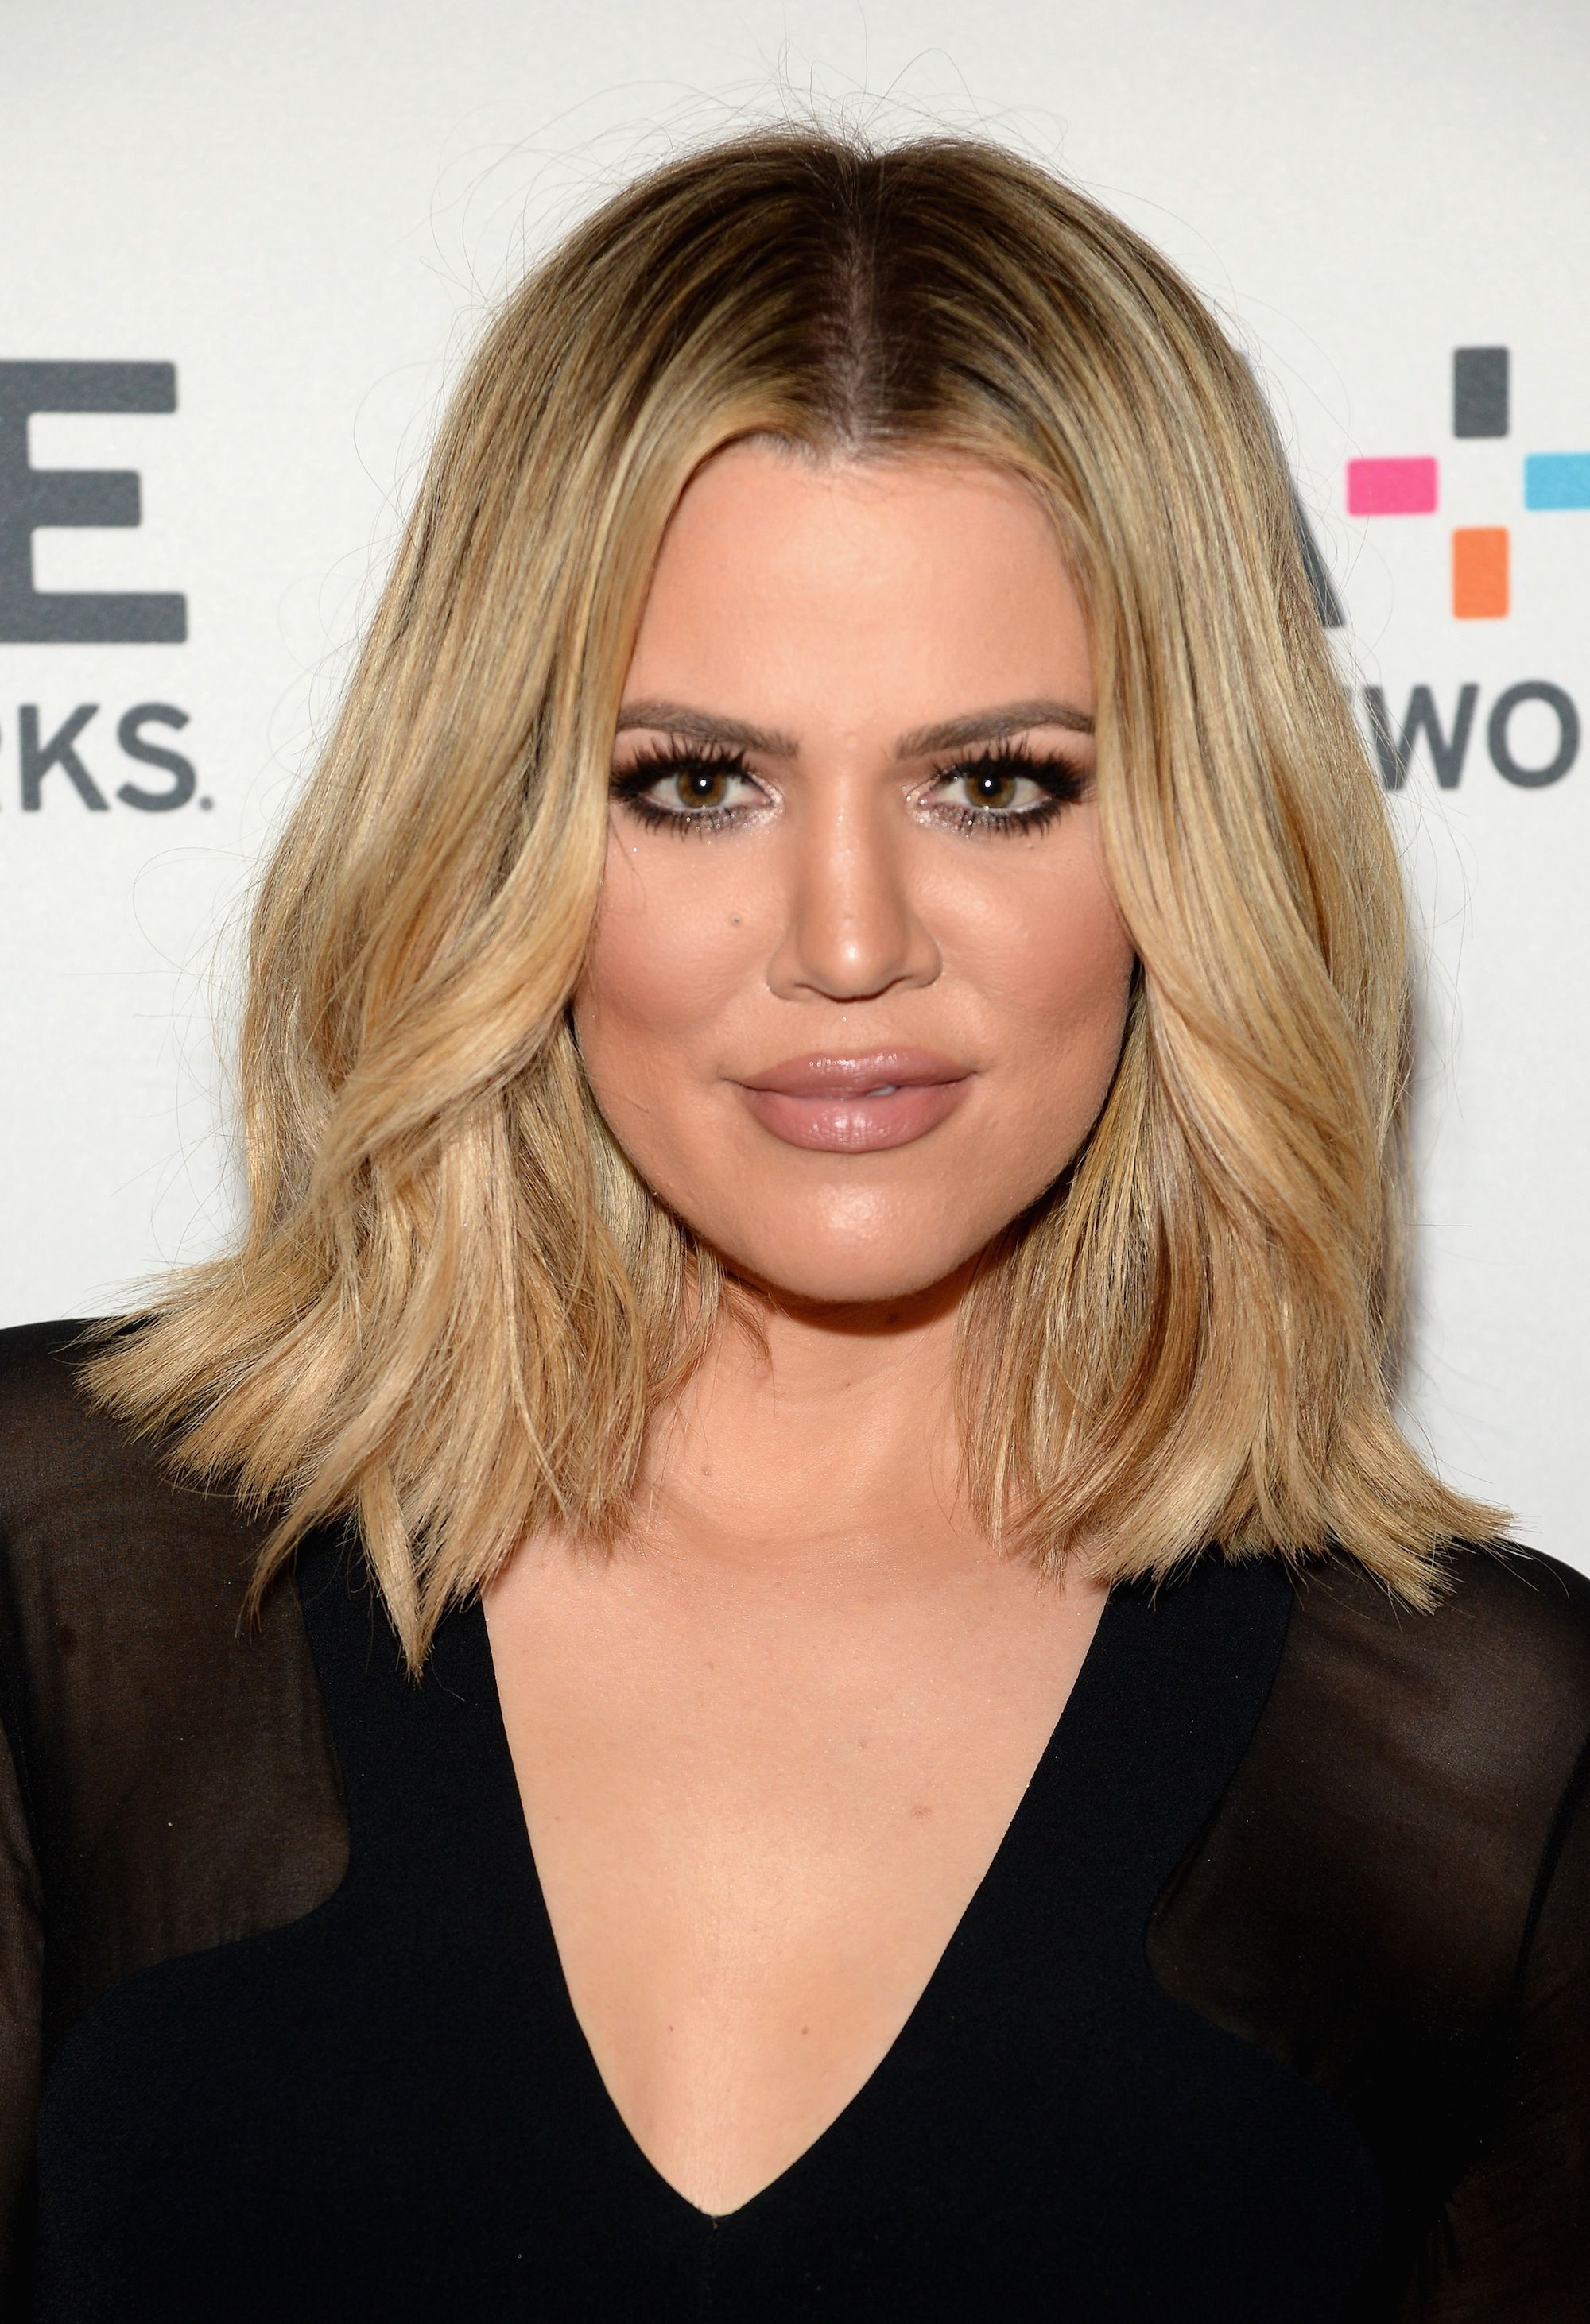 Your Foolproof Guide To Getting Khloe Kardashians Slicked Back Hair